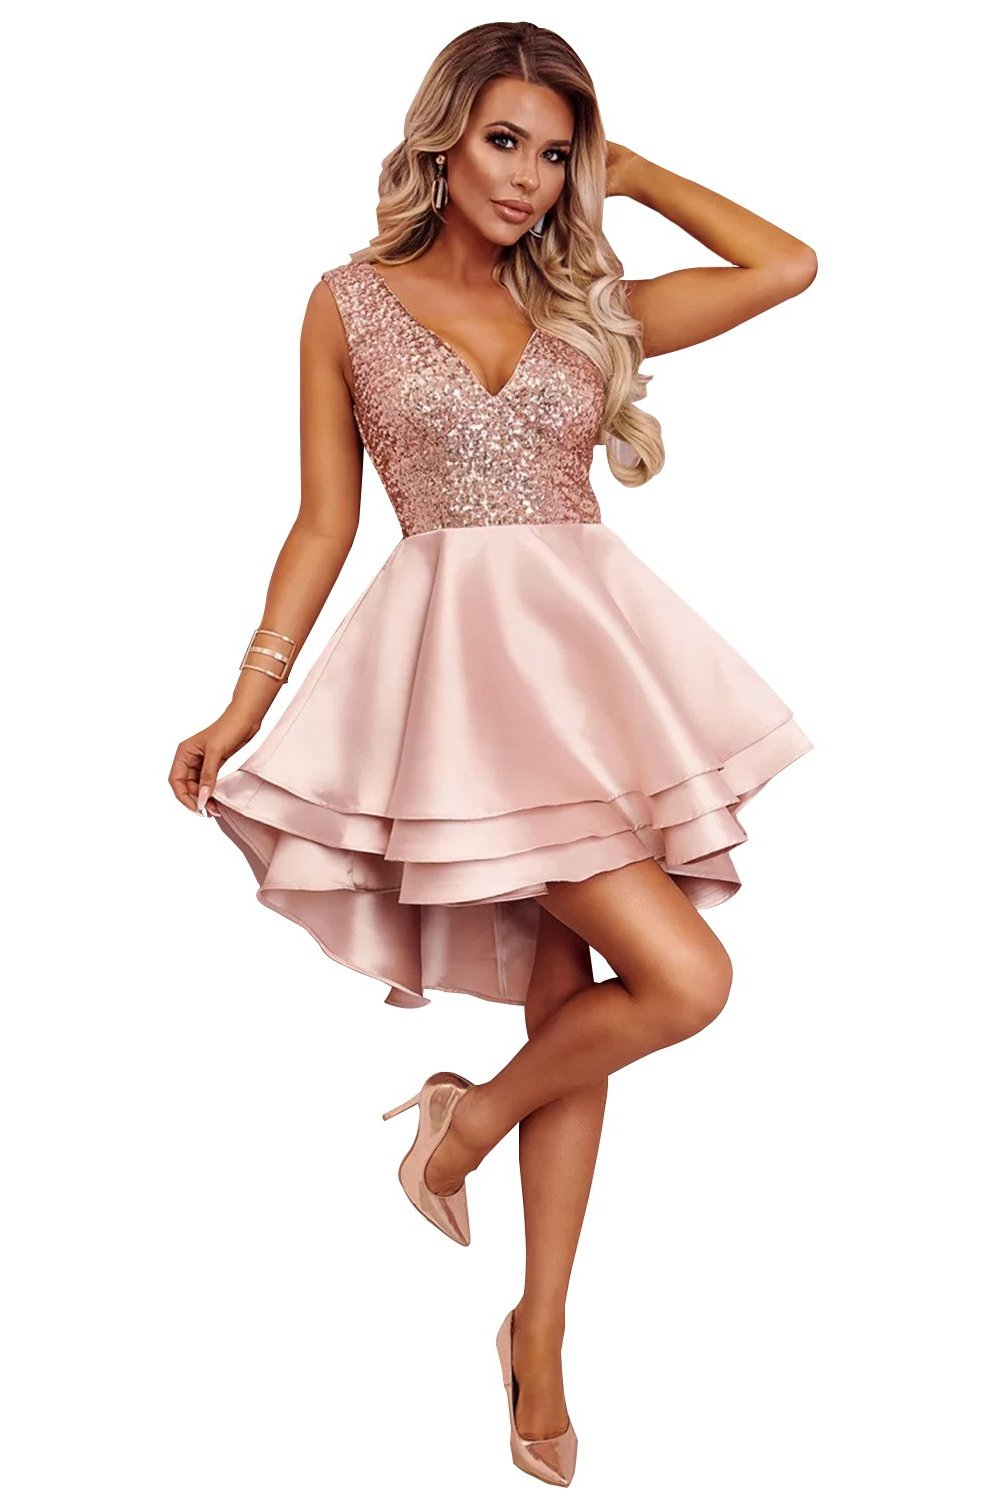 Luxe Satin Pink Gold Sequin Top Her Fashion V-Neck Skater Mini Dress